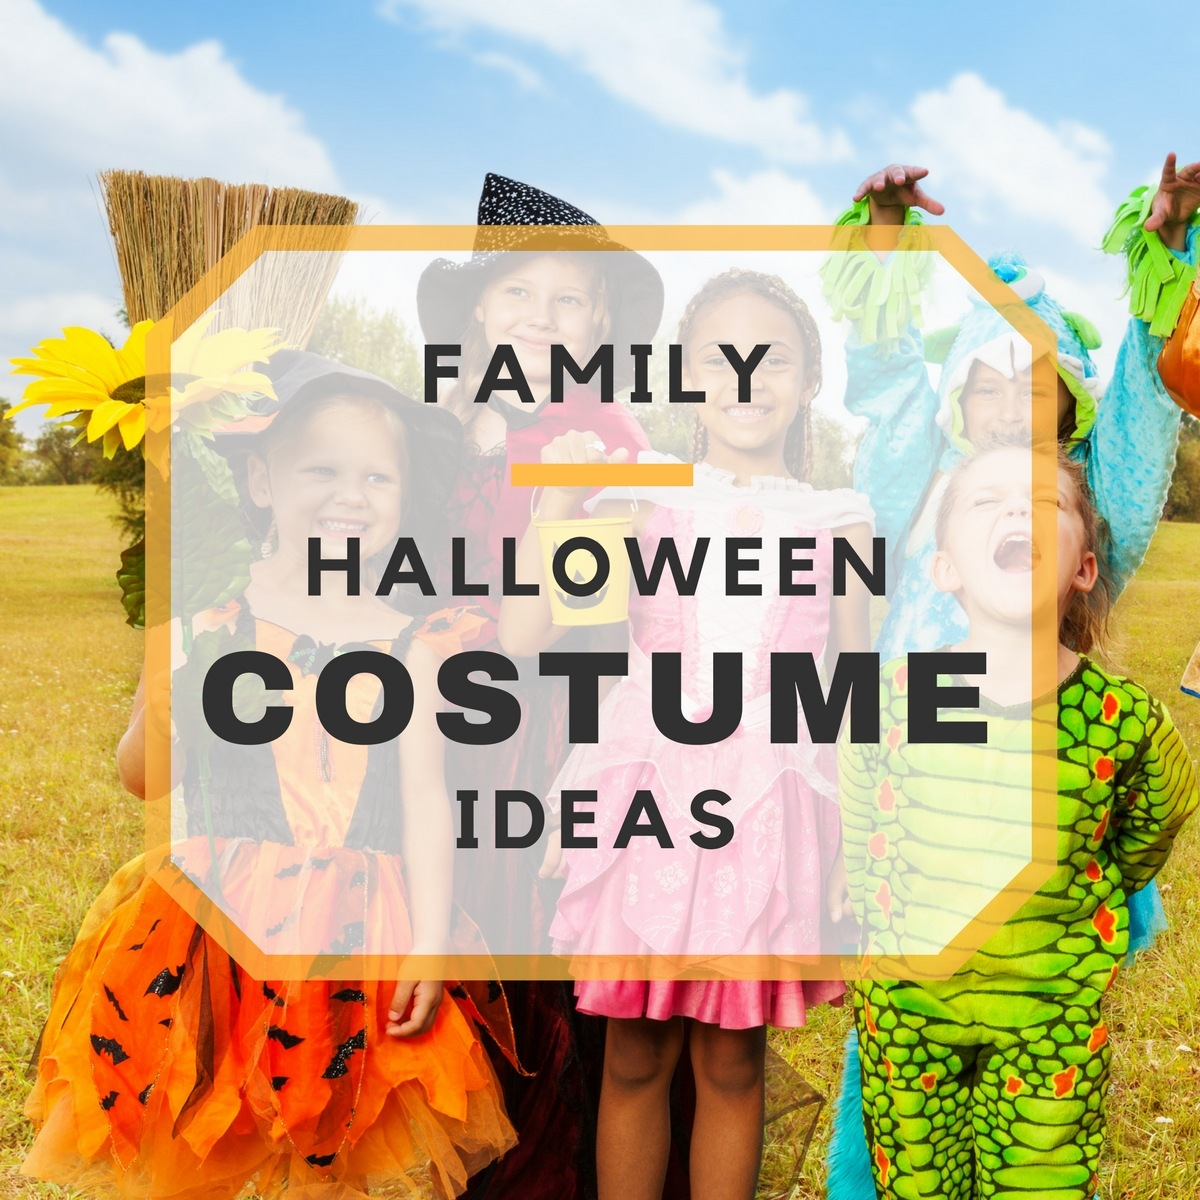 15 Best Family Halloween Costume Ideas